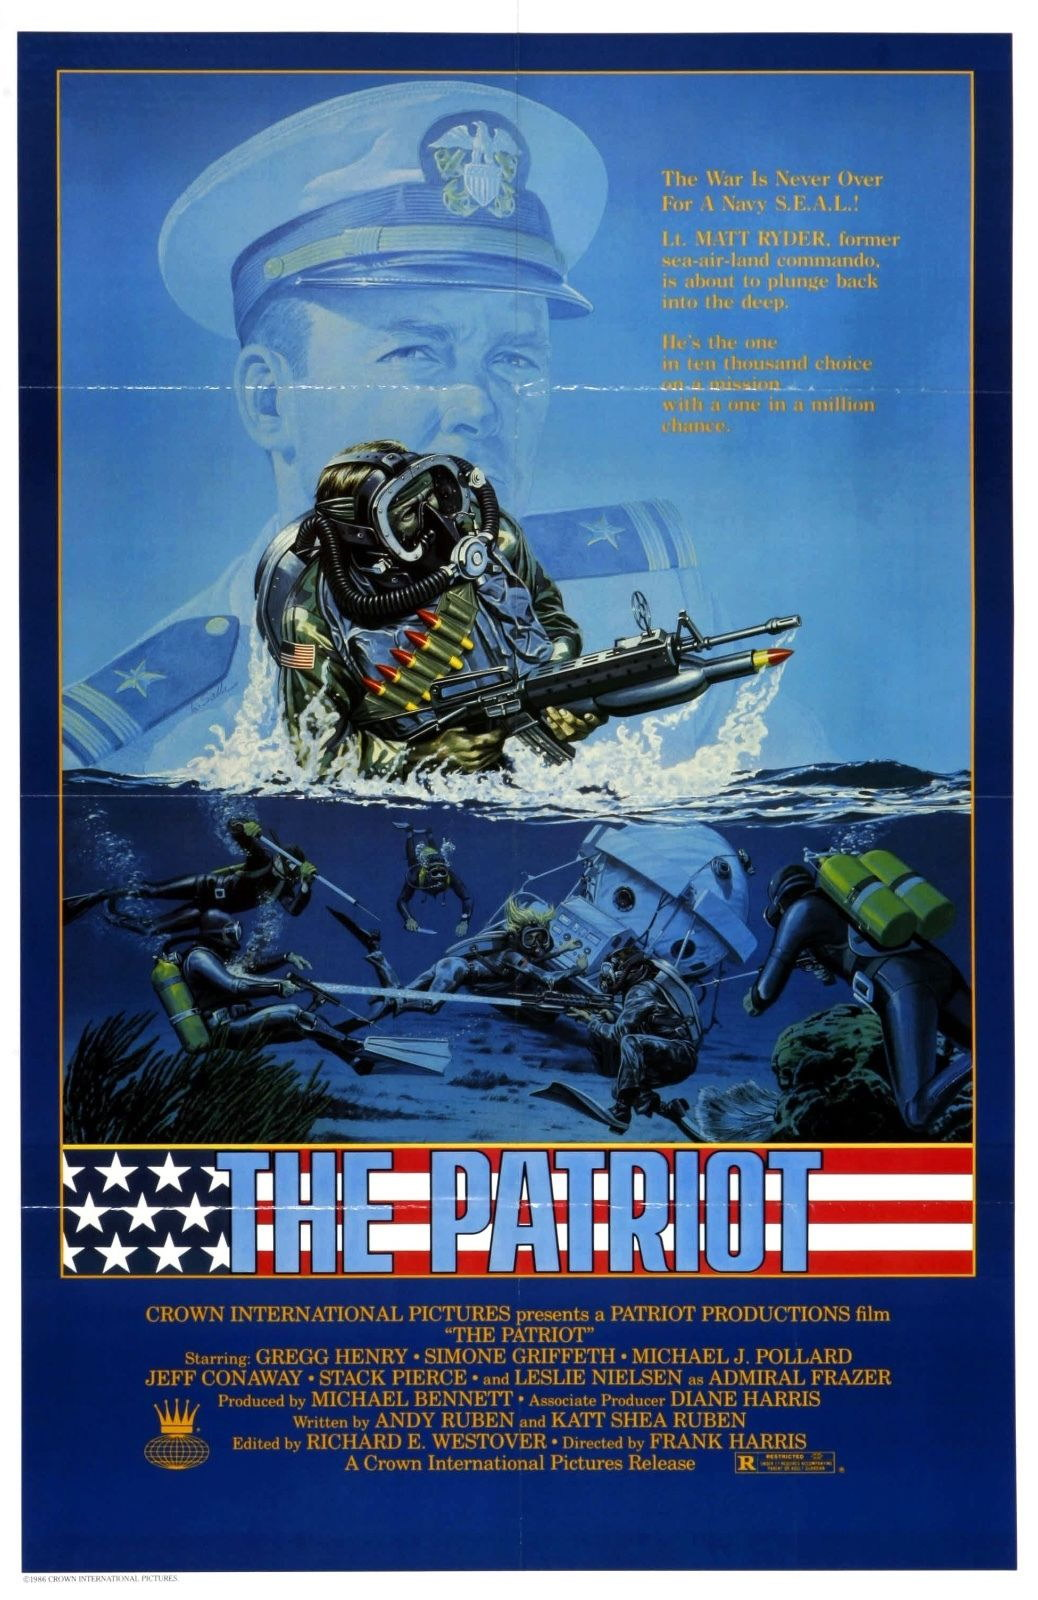 73849 The Patriot Movie 1986 Drama Action Wall Print Poster Affiche